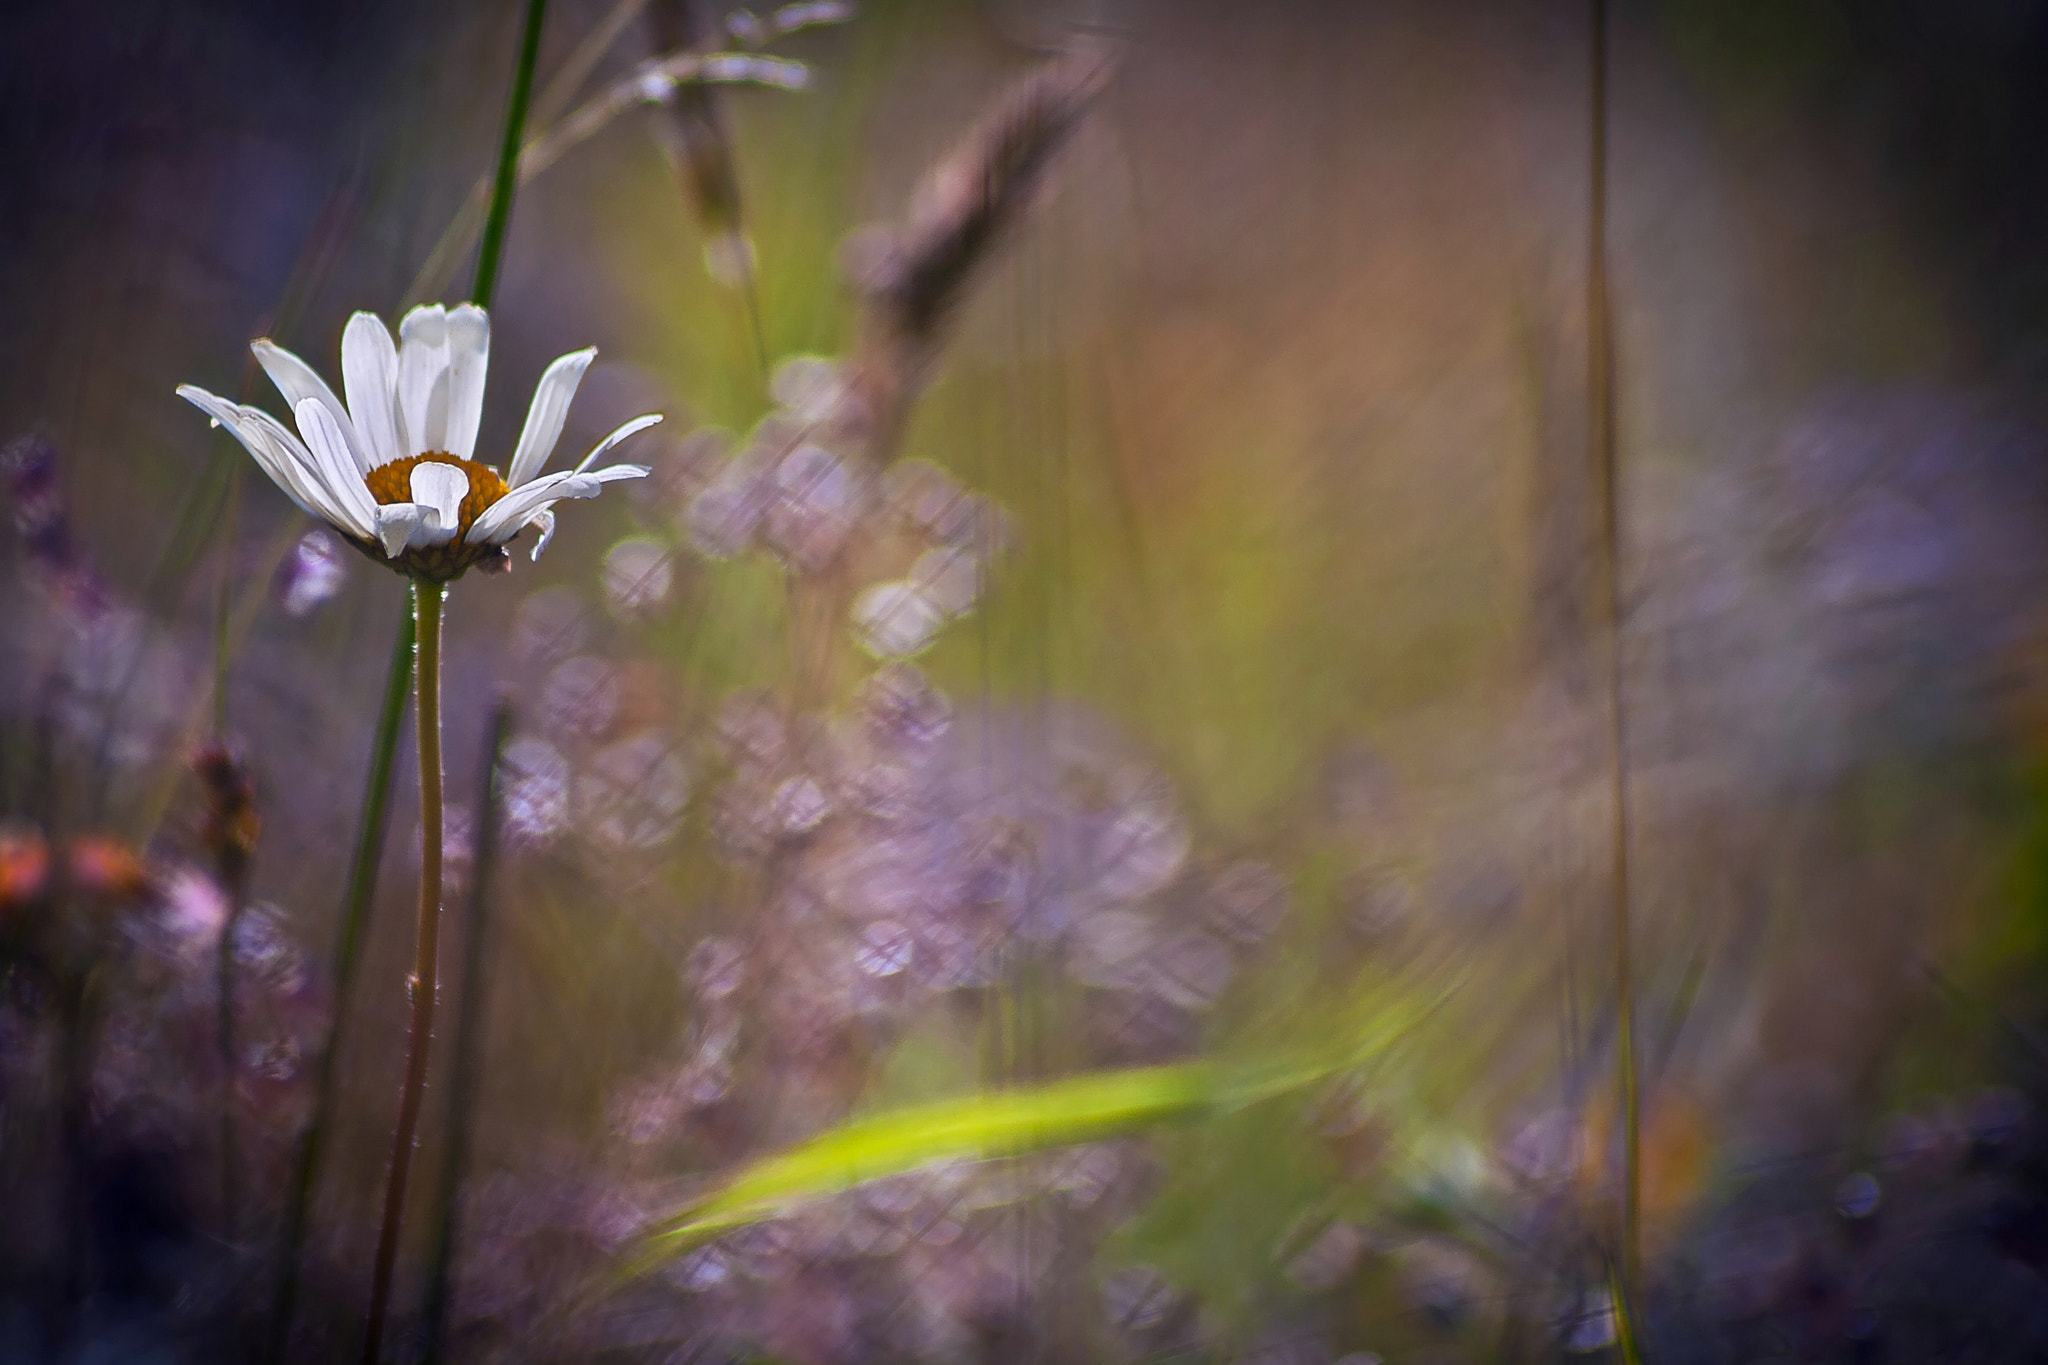 Photograph ♥ daisy facing the wind ♥ by Yohanna Del'heaumeau on 500px